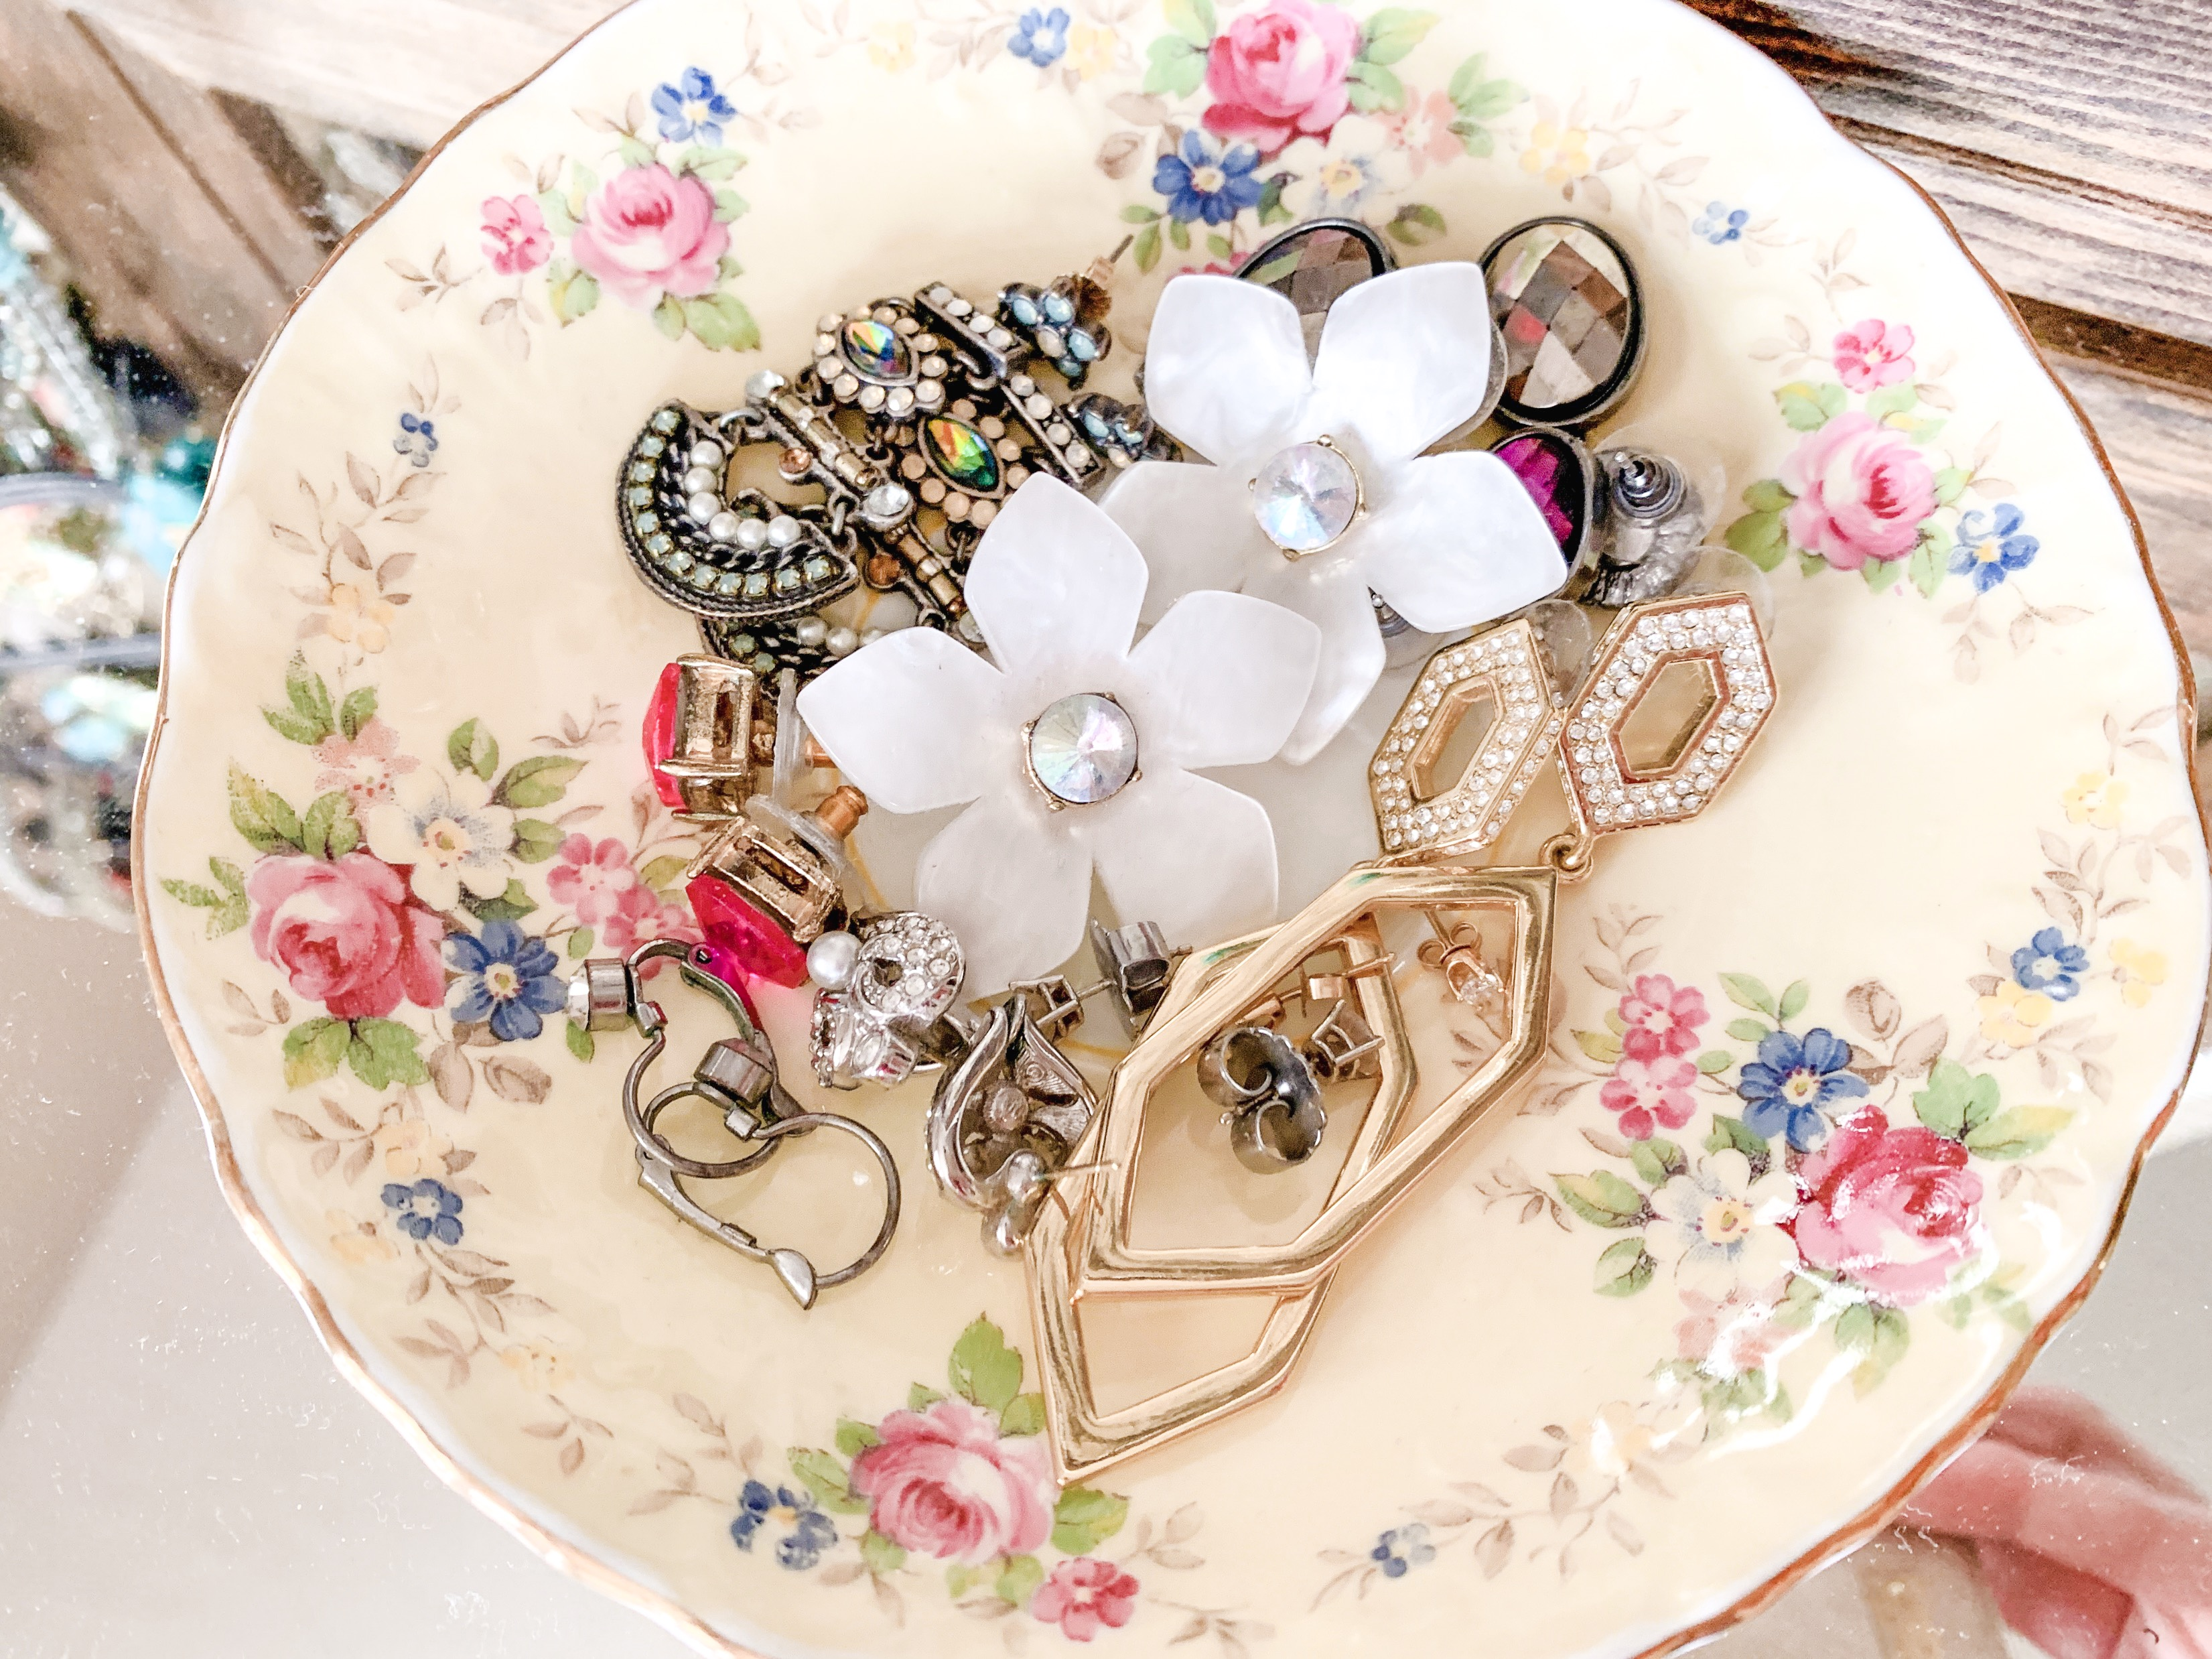 Creative Jewelry Organizing - Earrings in Dish